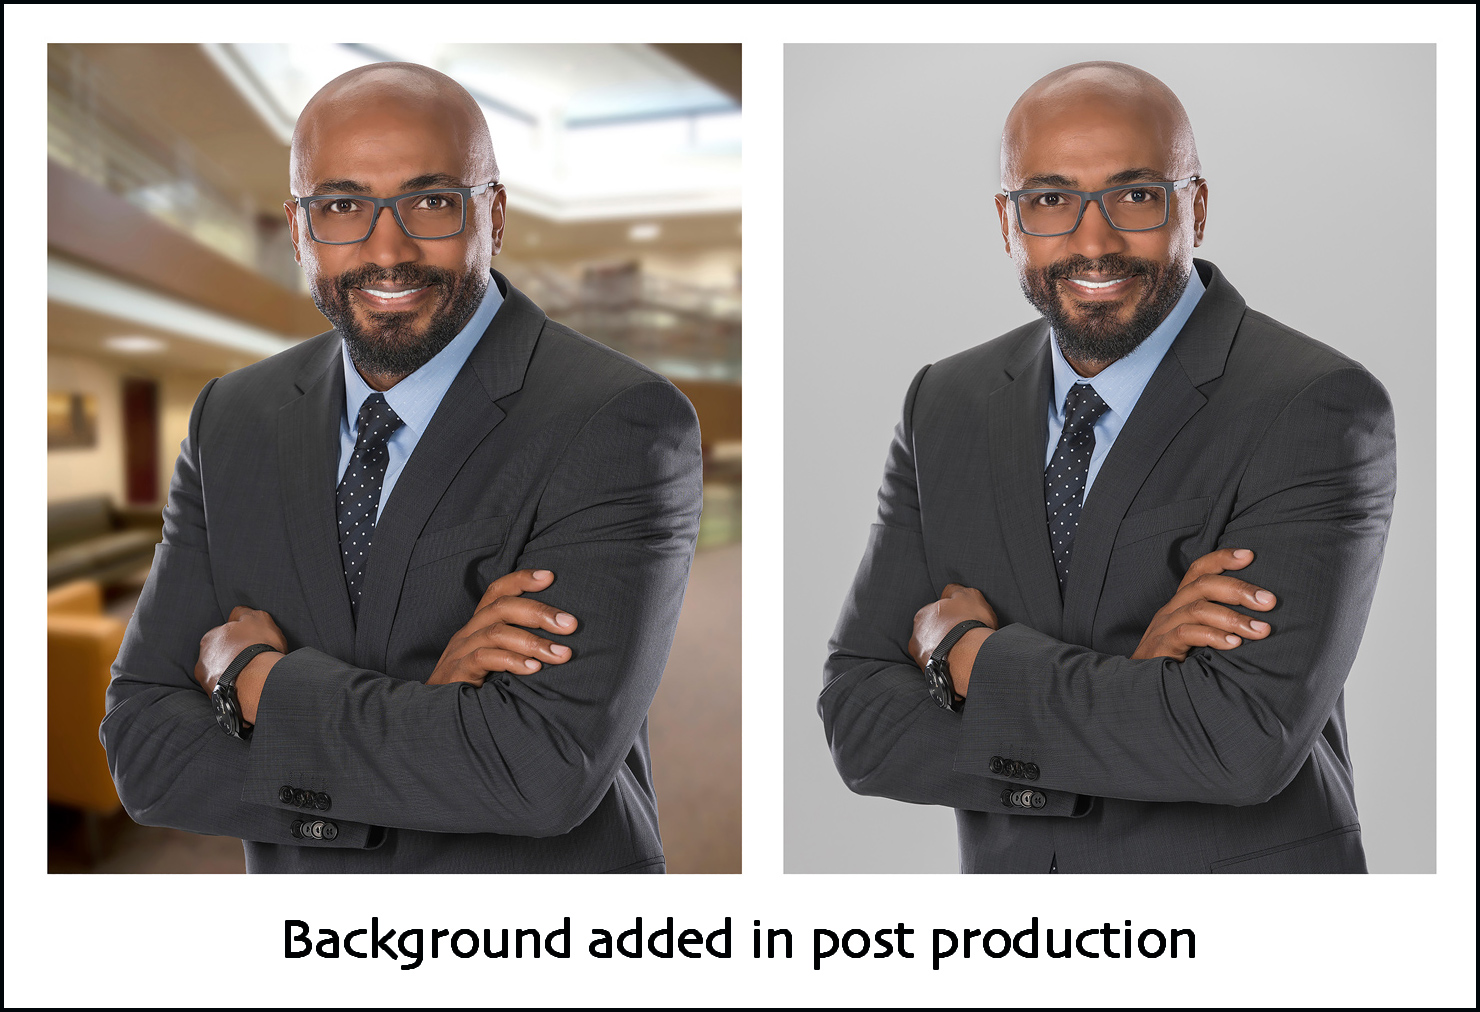 photography composite of business executive